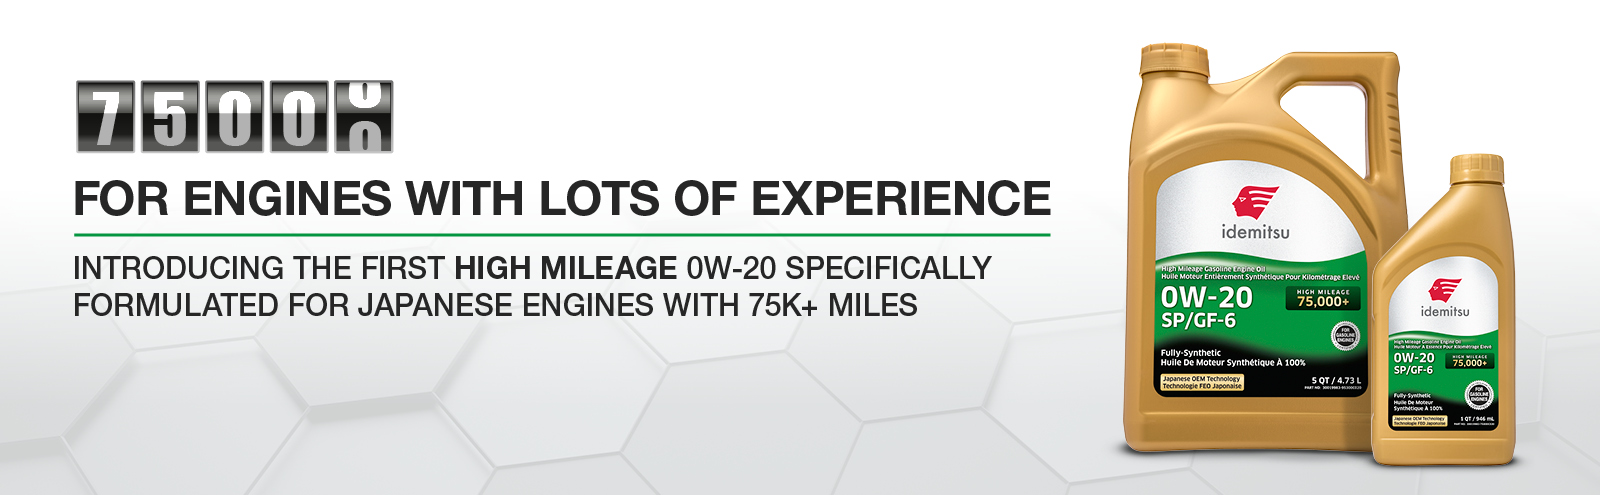 Engines with lots of experience